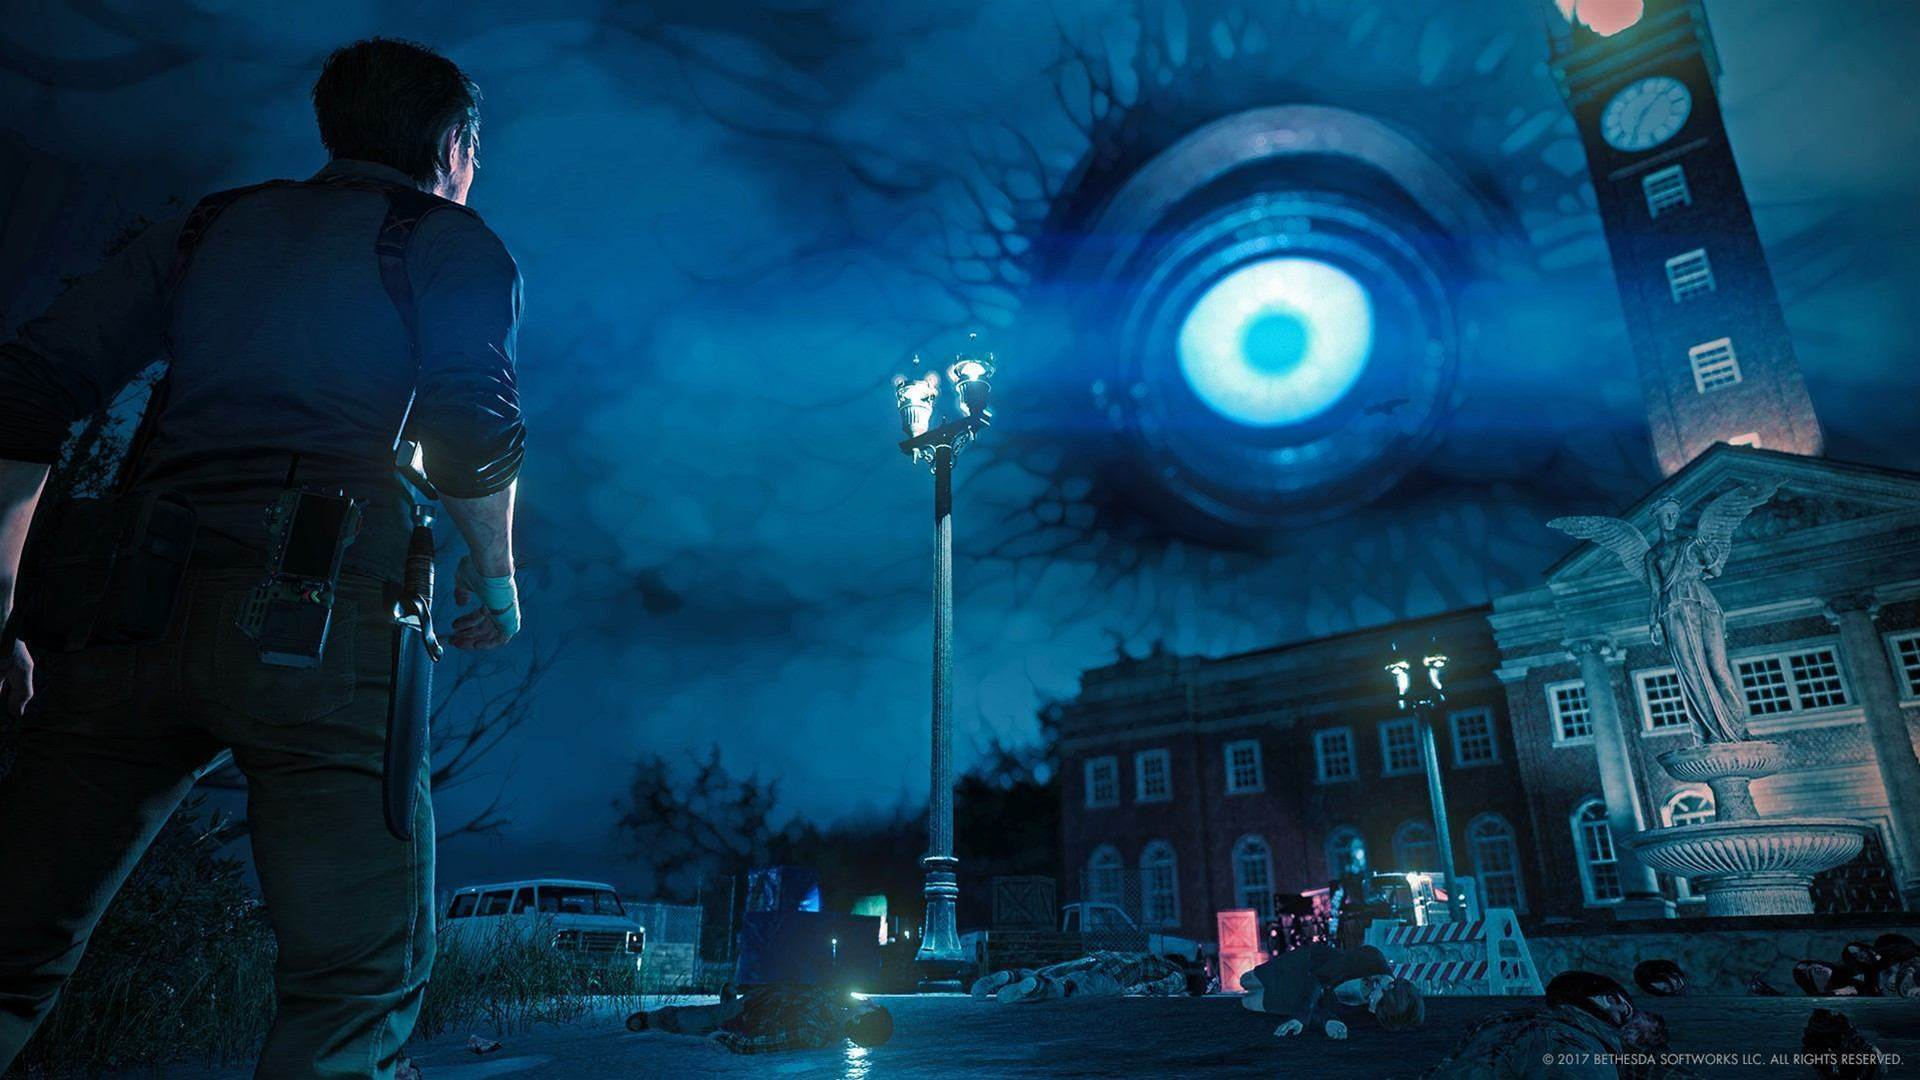 Sinister screenshots for The Evil Within 2